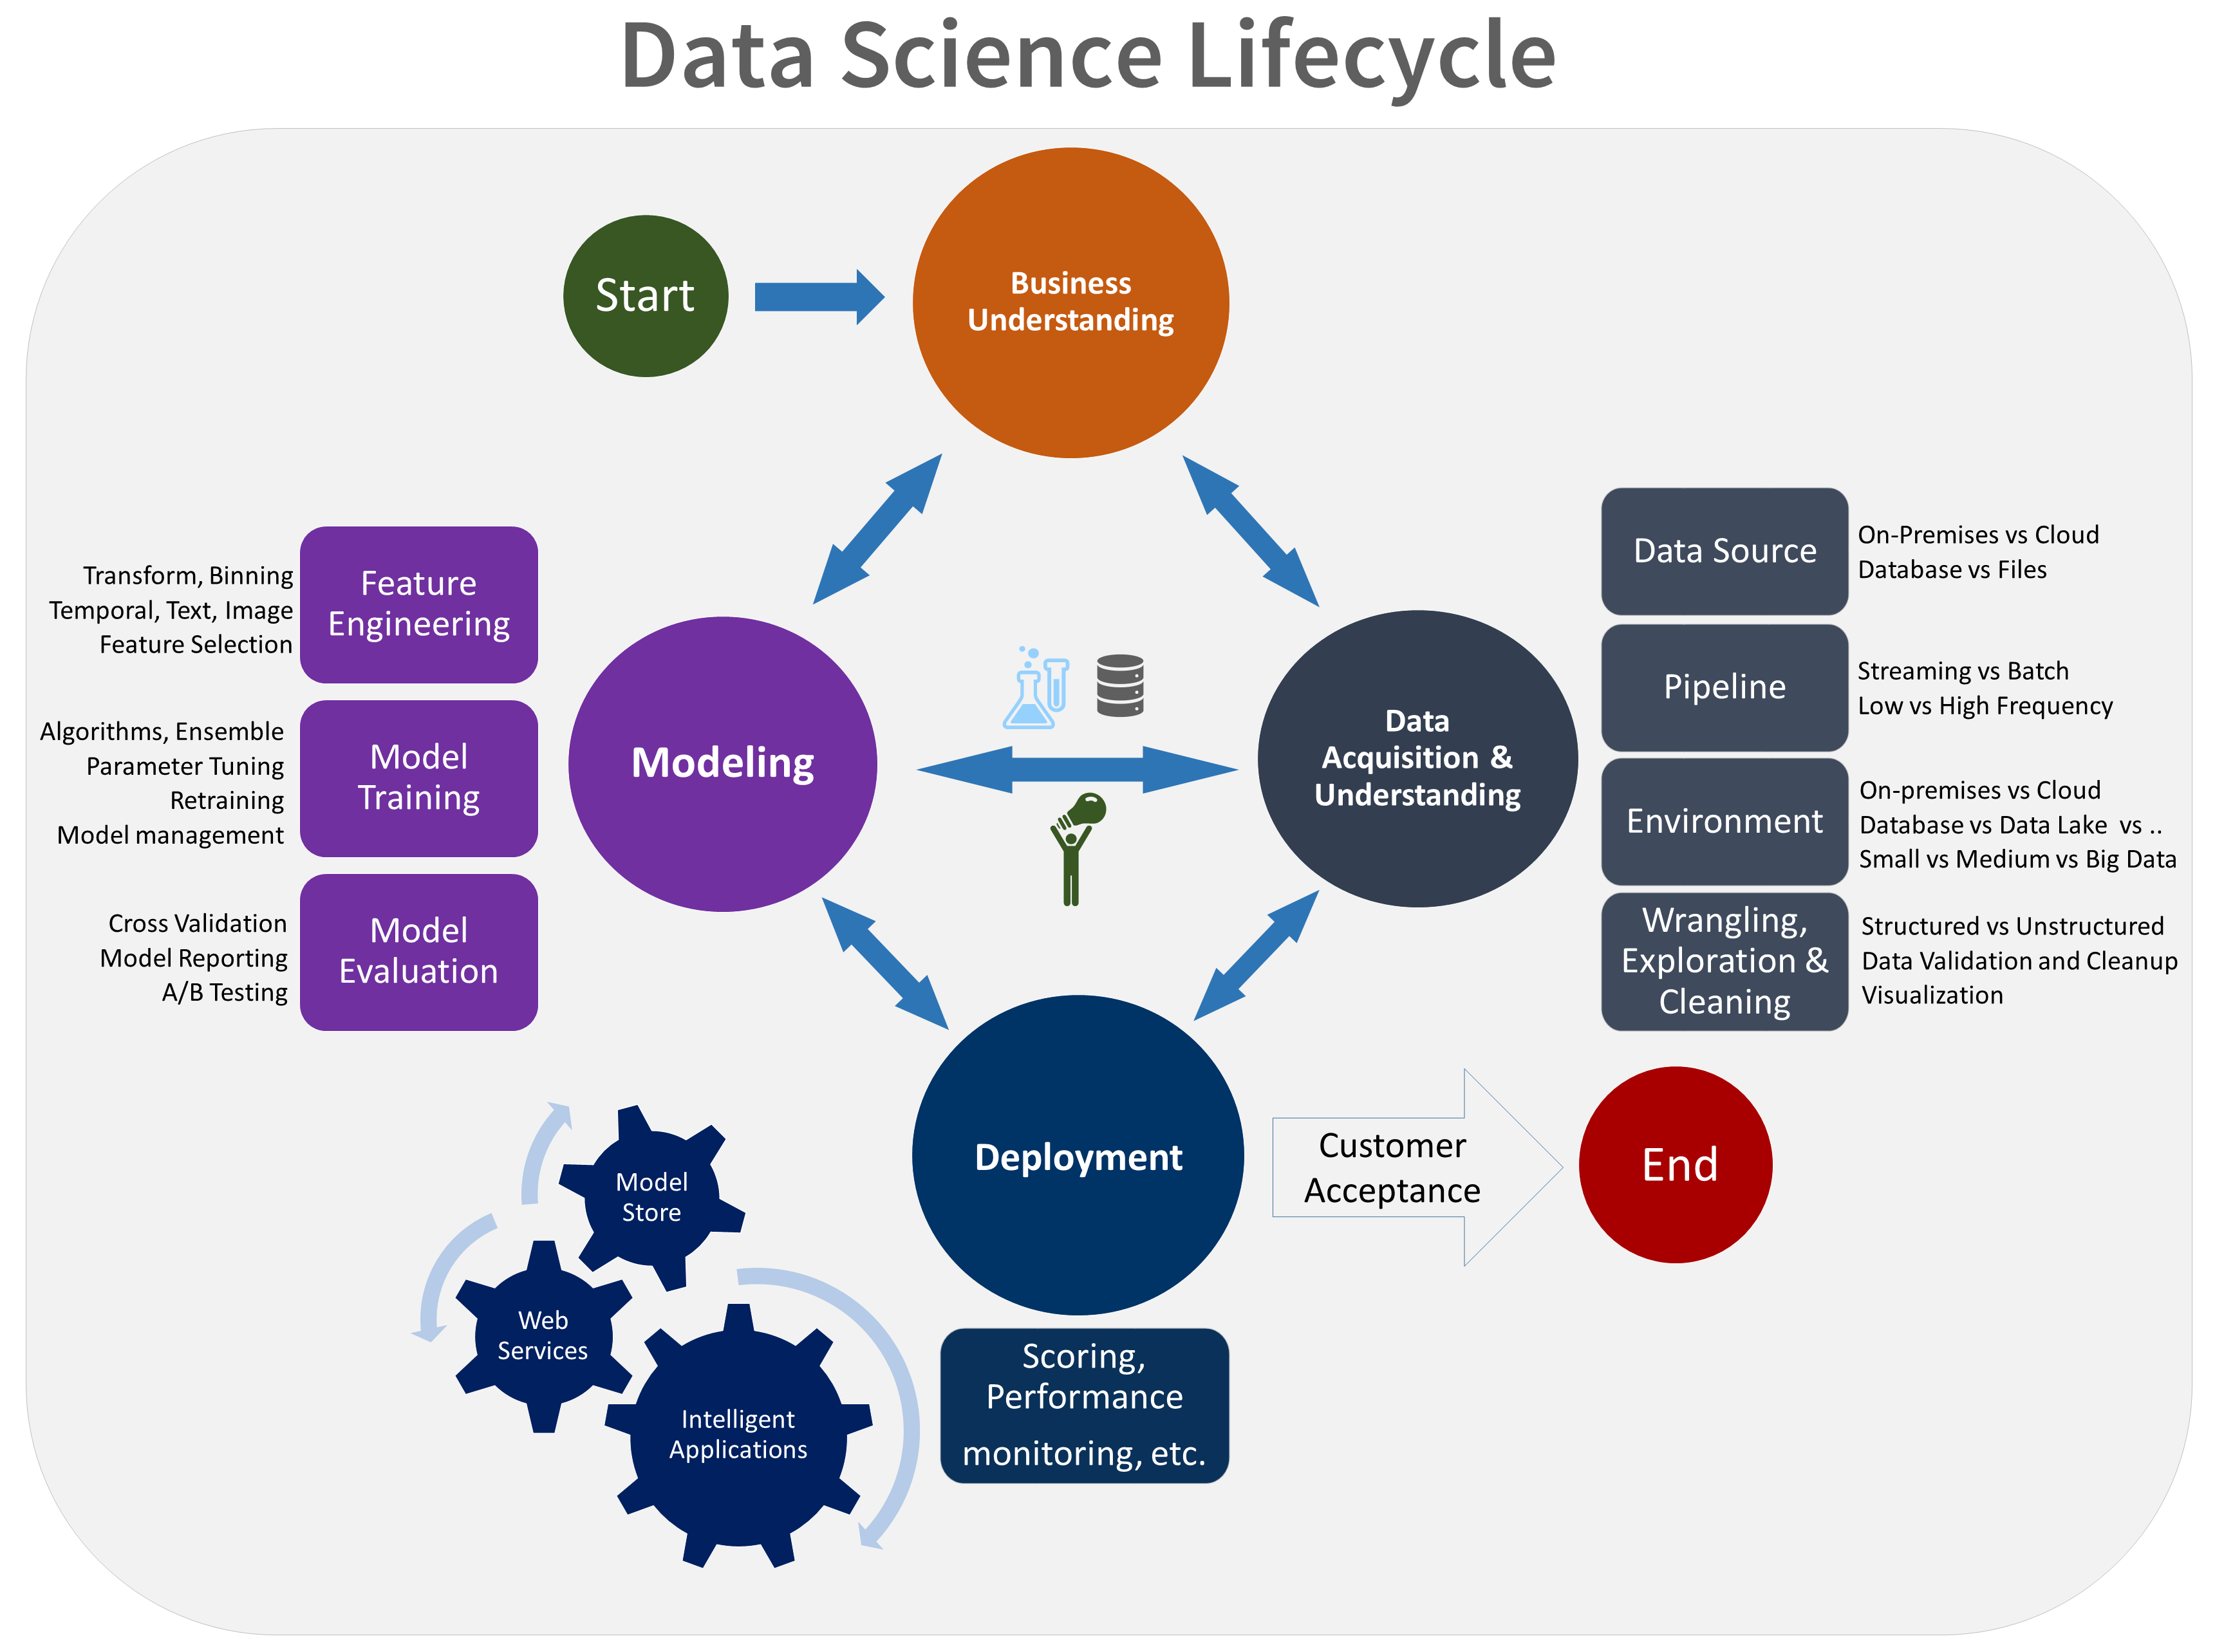 datascience-lifecycle